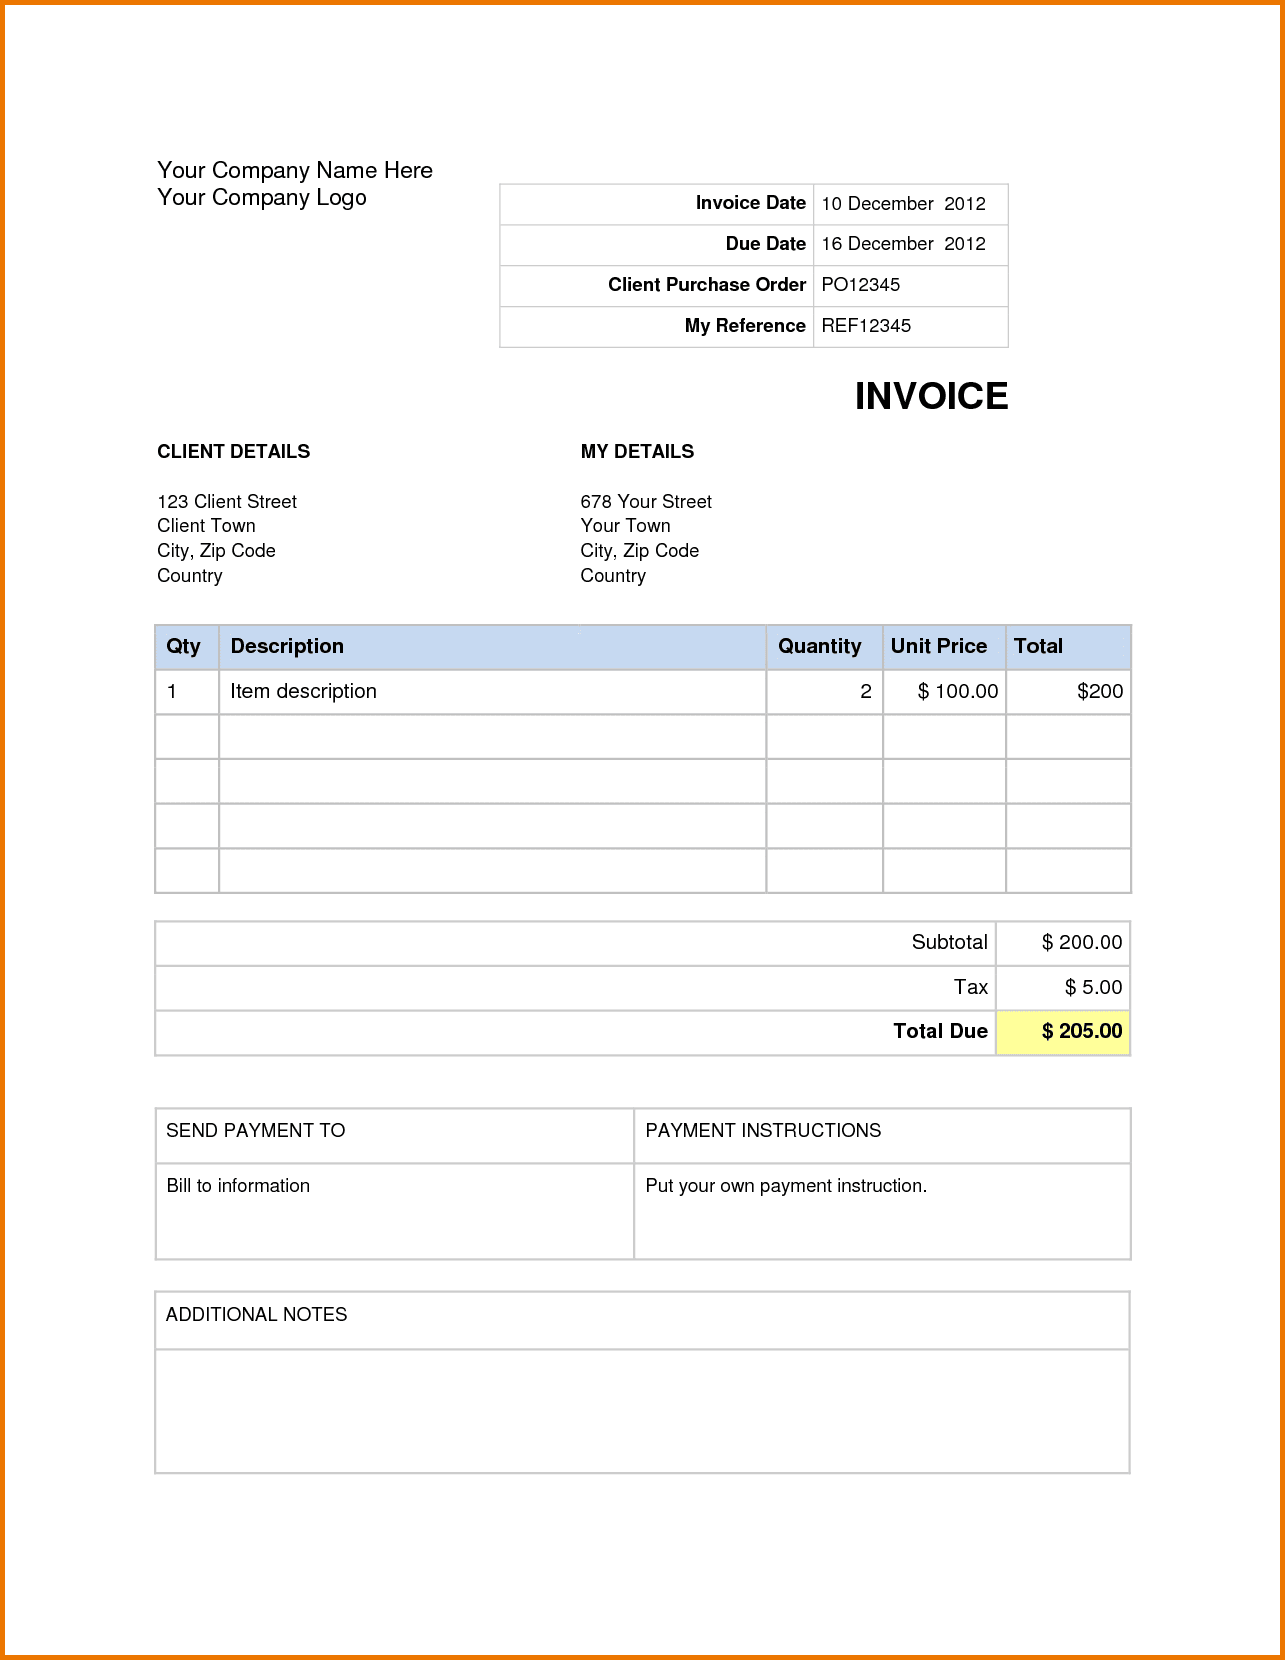 Invoice Template Microsoft Word 2007 Invoice Template Microsoft Word Spreadsheet Templates for Busines Spreadsheet Templates for Busines Free Invoice Template Microsoft Word 2007